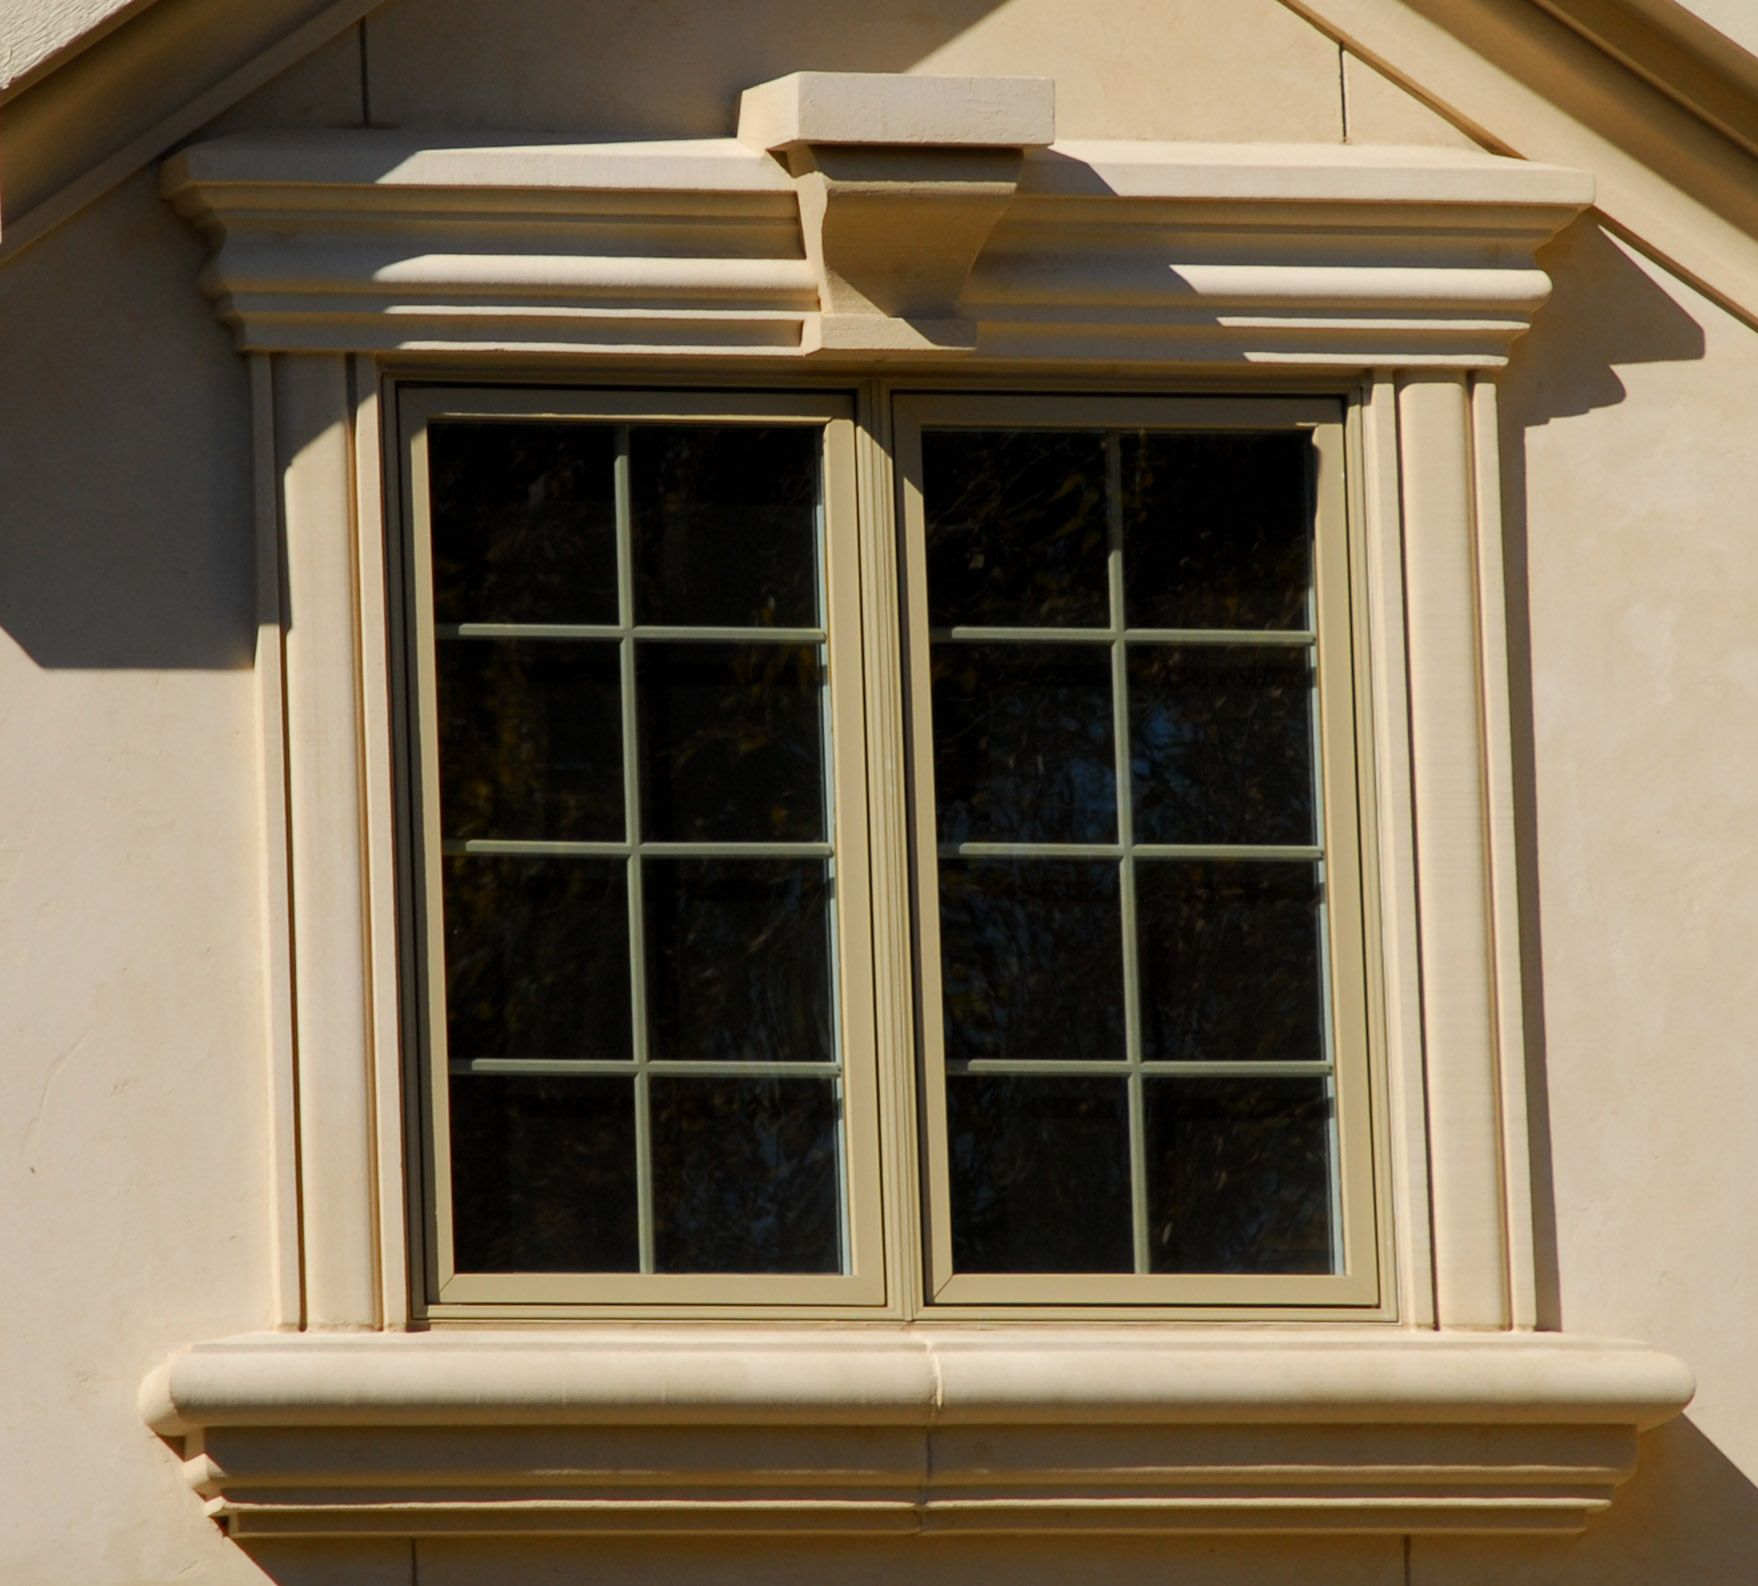 Exterior window trims on pinterest window moldings exterior windows - Architectural Stone Window And Door Trim Columns Balustrades For The Interior And Exterior Of Your Home Or Business